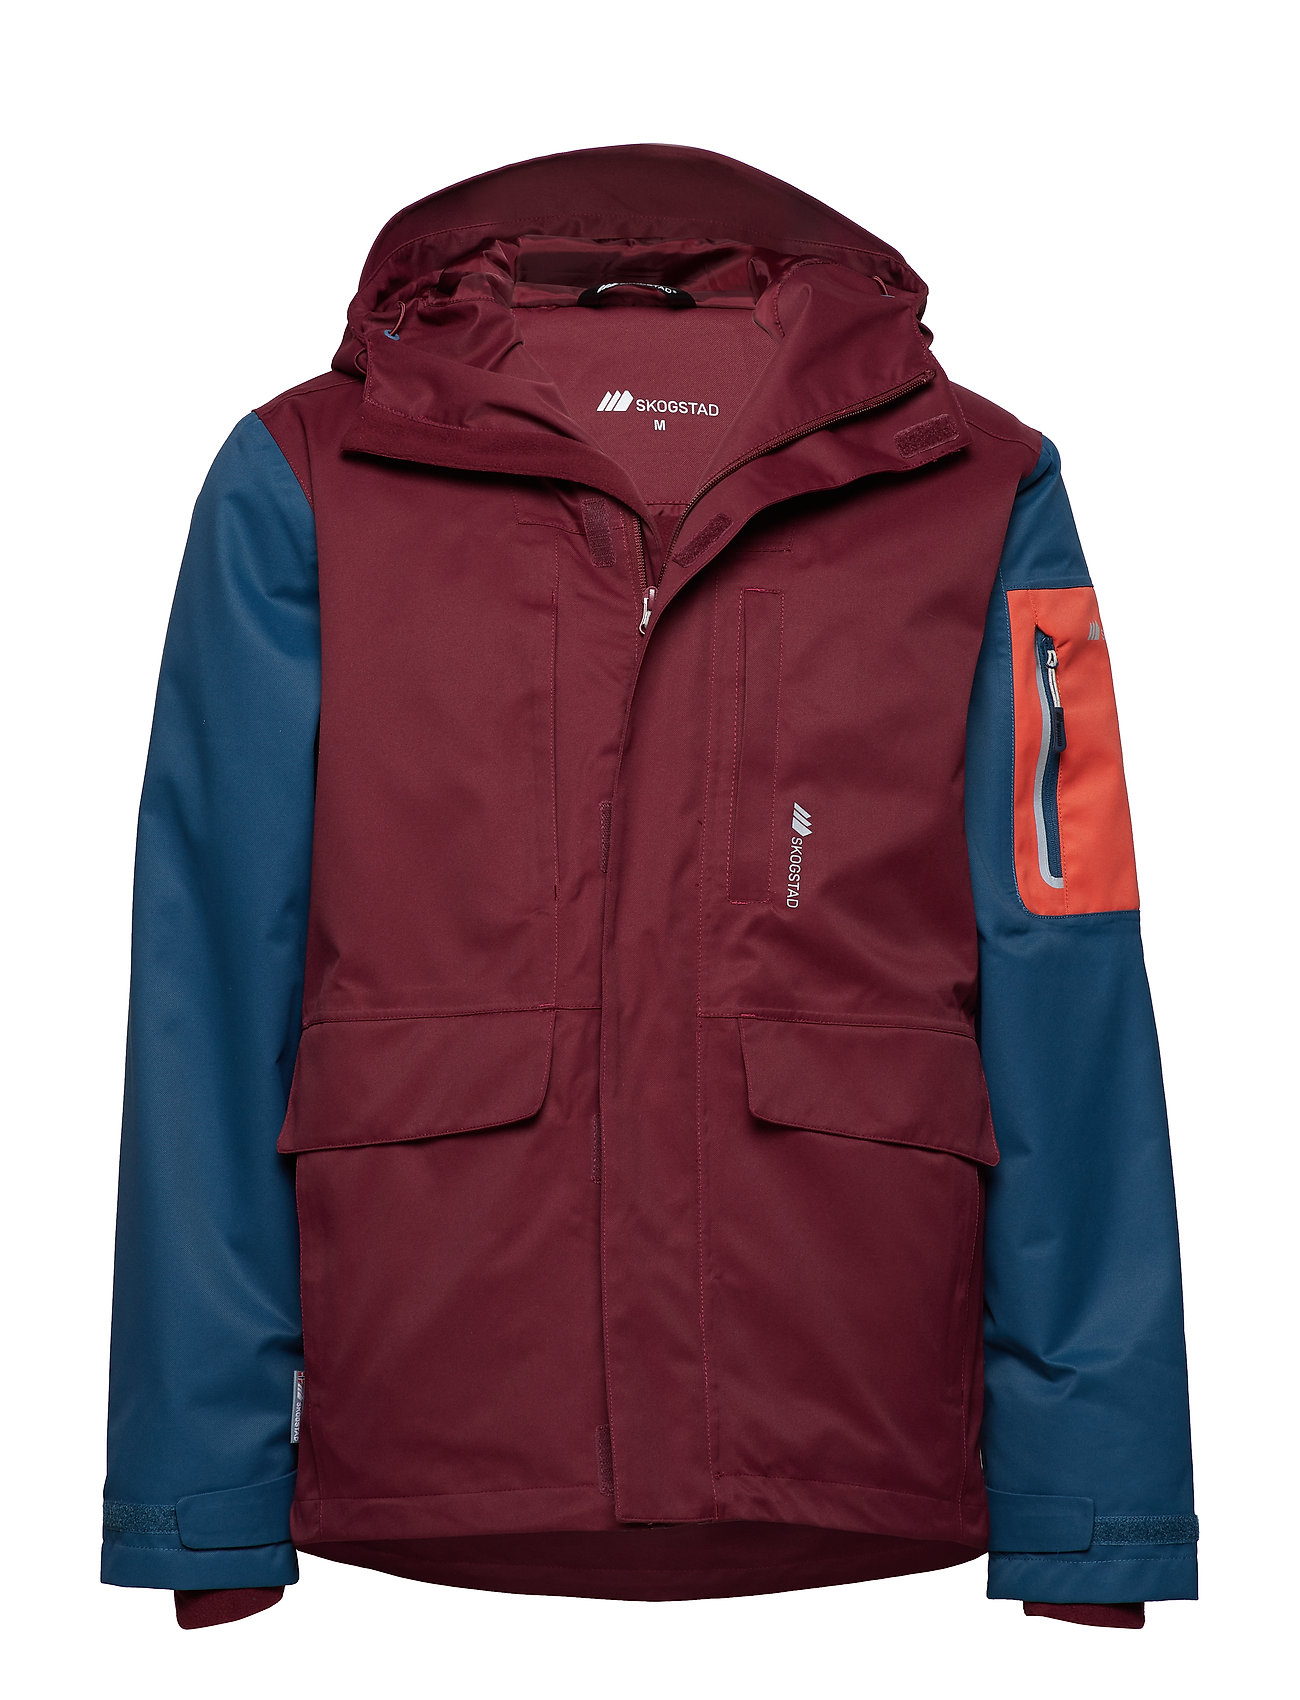 Skogstad Berge 2-layer technical jacket - ZINFADEL